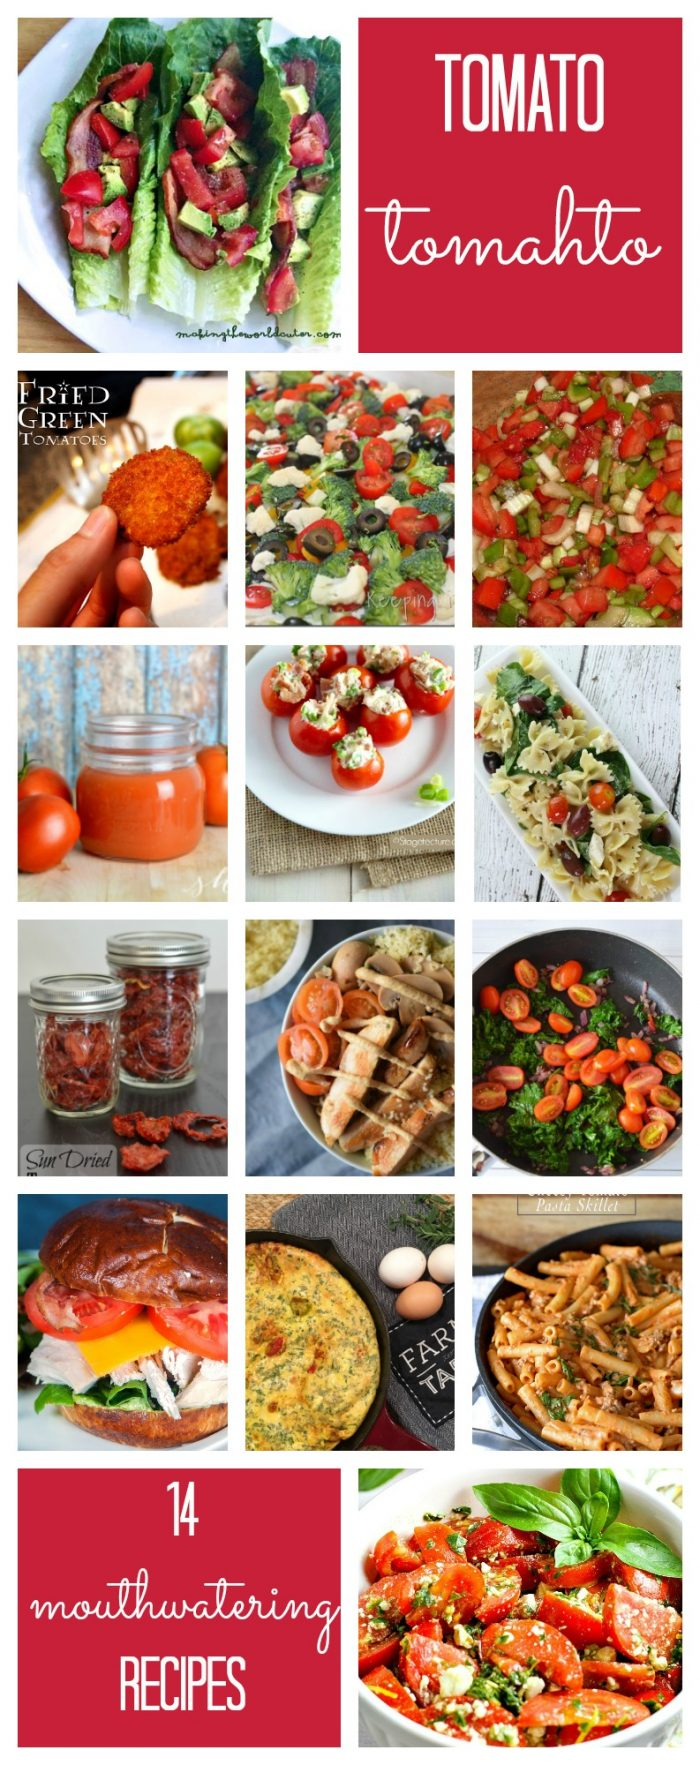 14 creative ways to use your fresh tomatoes. Tomato recipes.